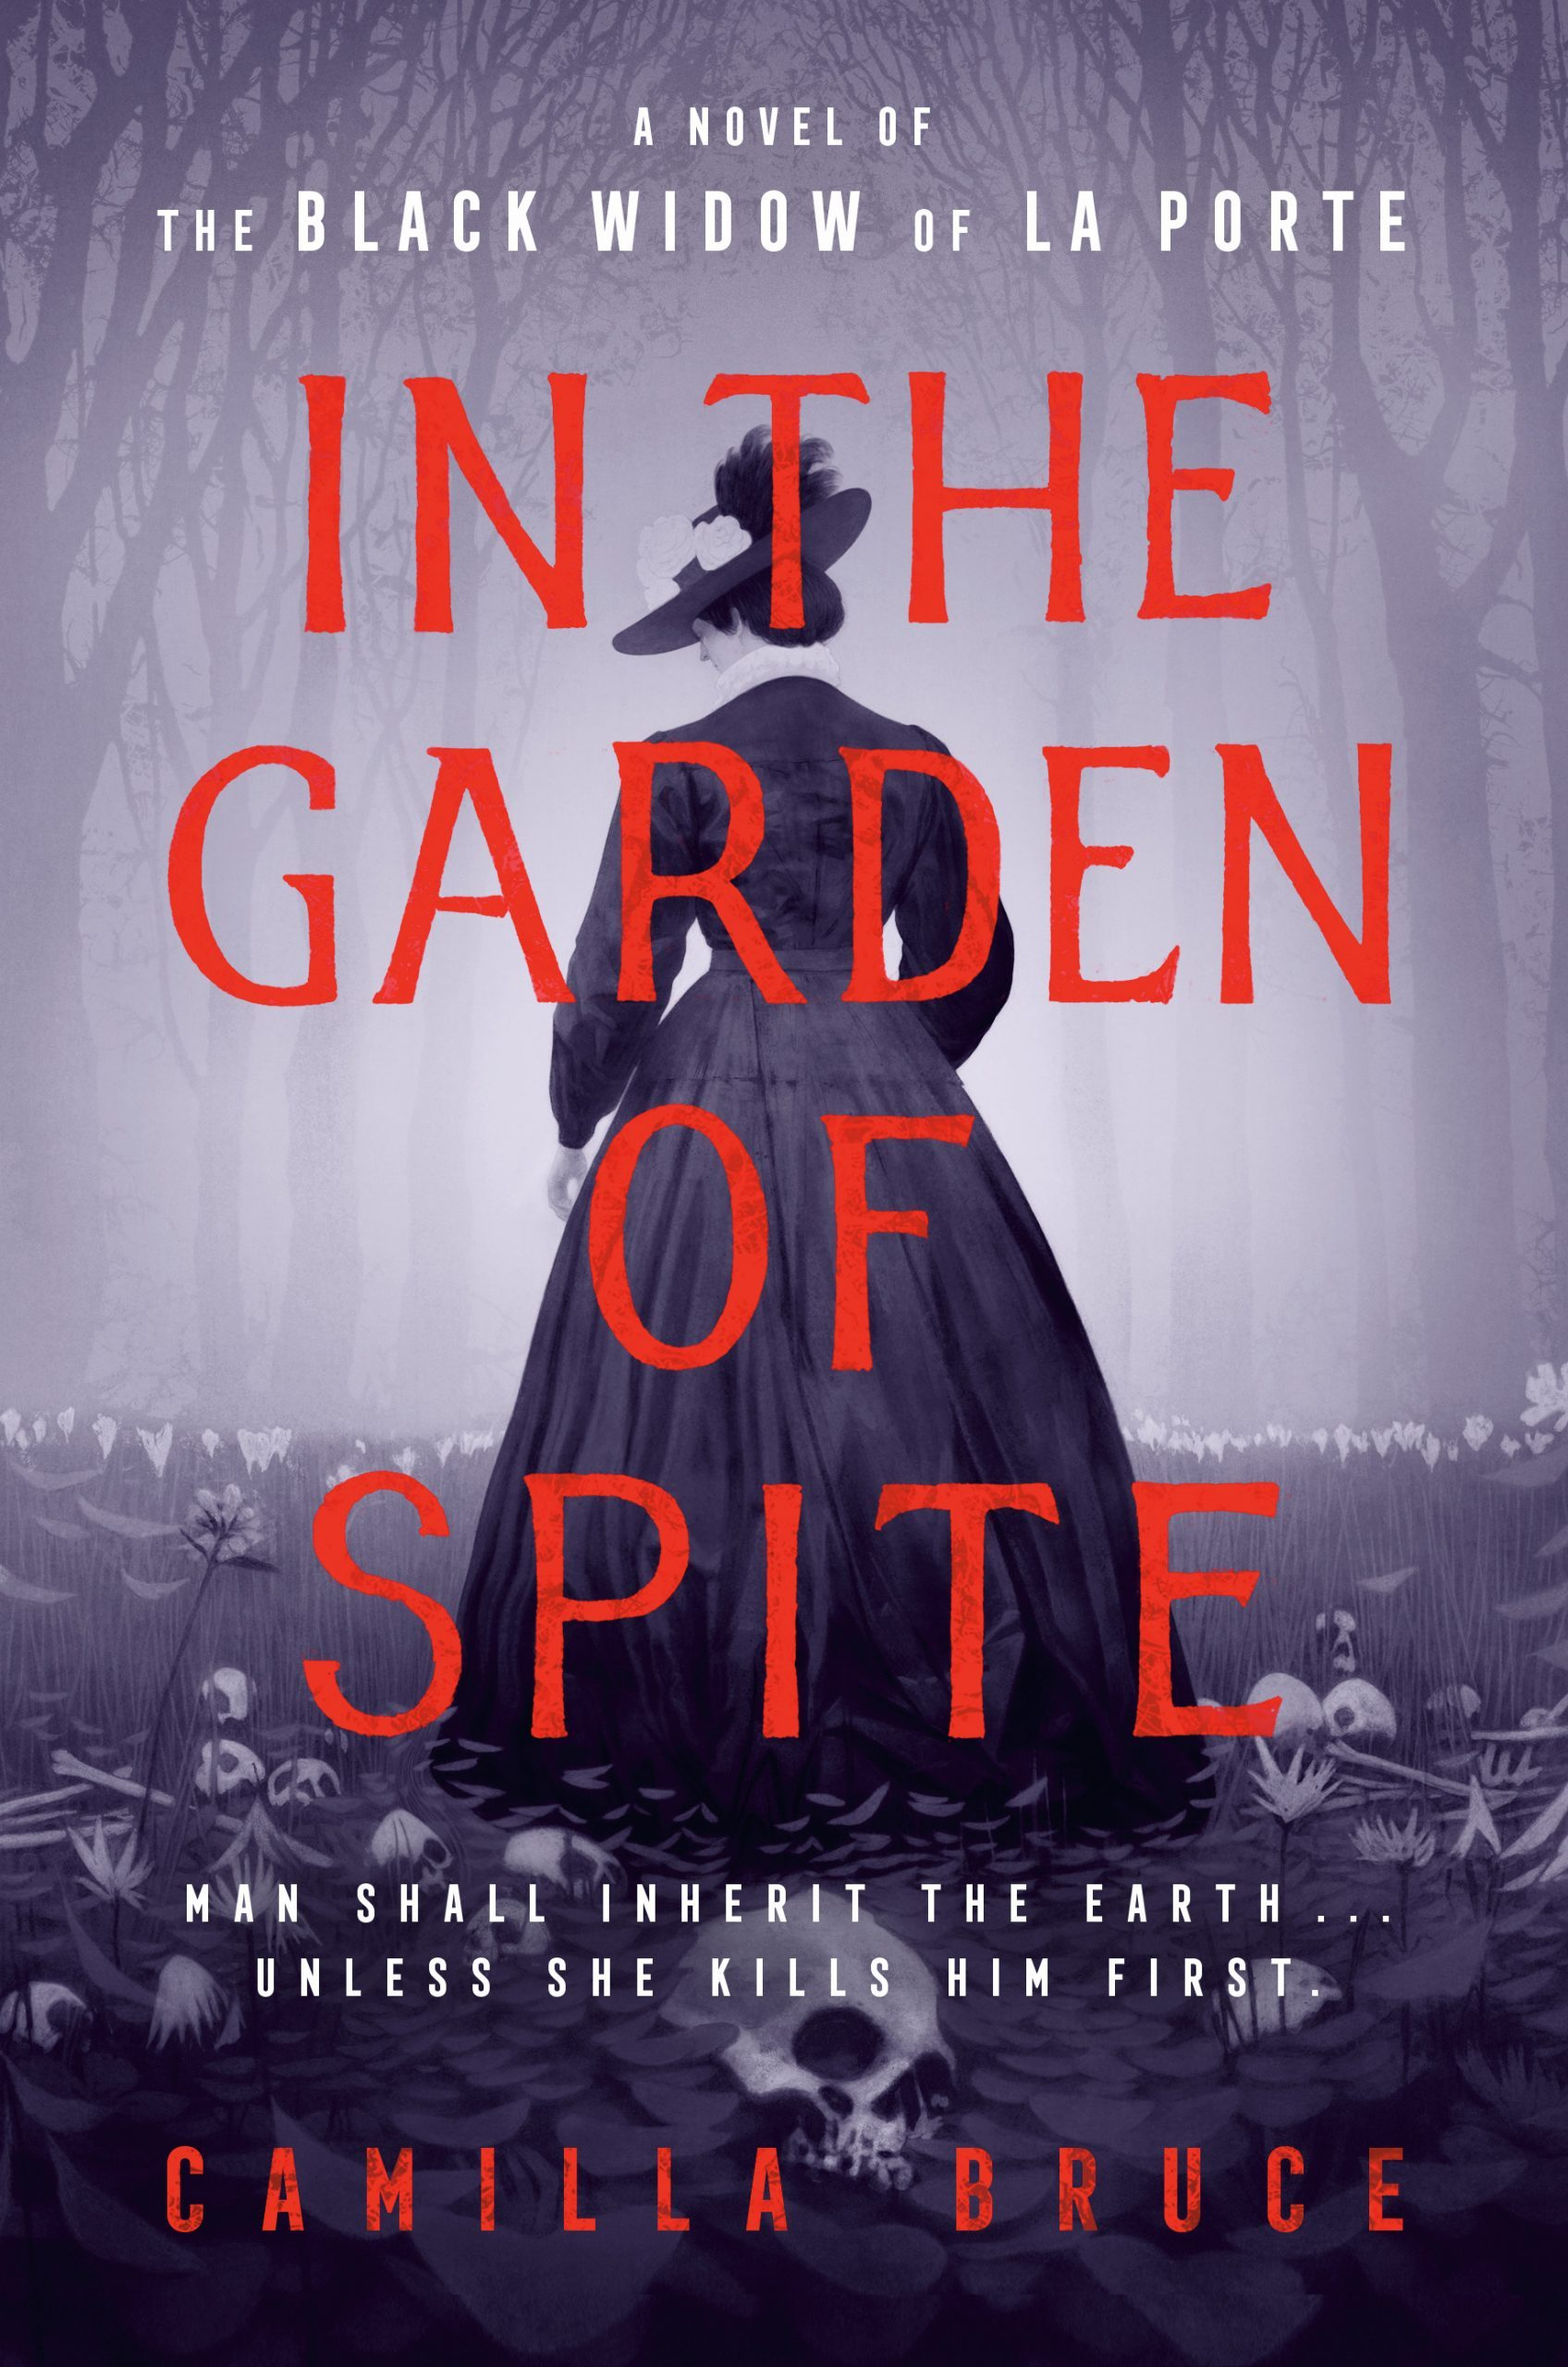 In the Garden Of Spite By Camilla Bruce Release Date? 2021 Historical Fiction & Thriller Releases